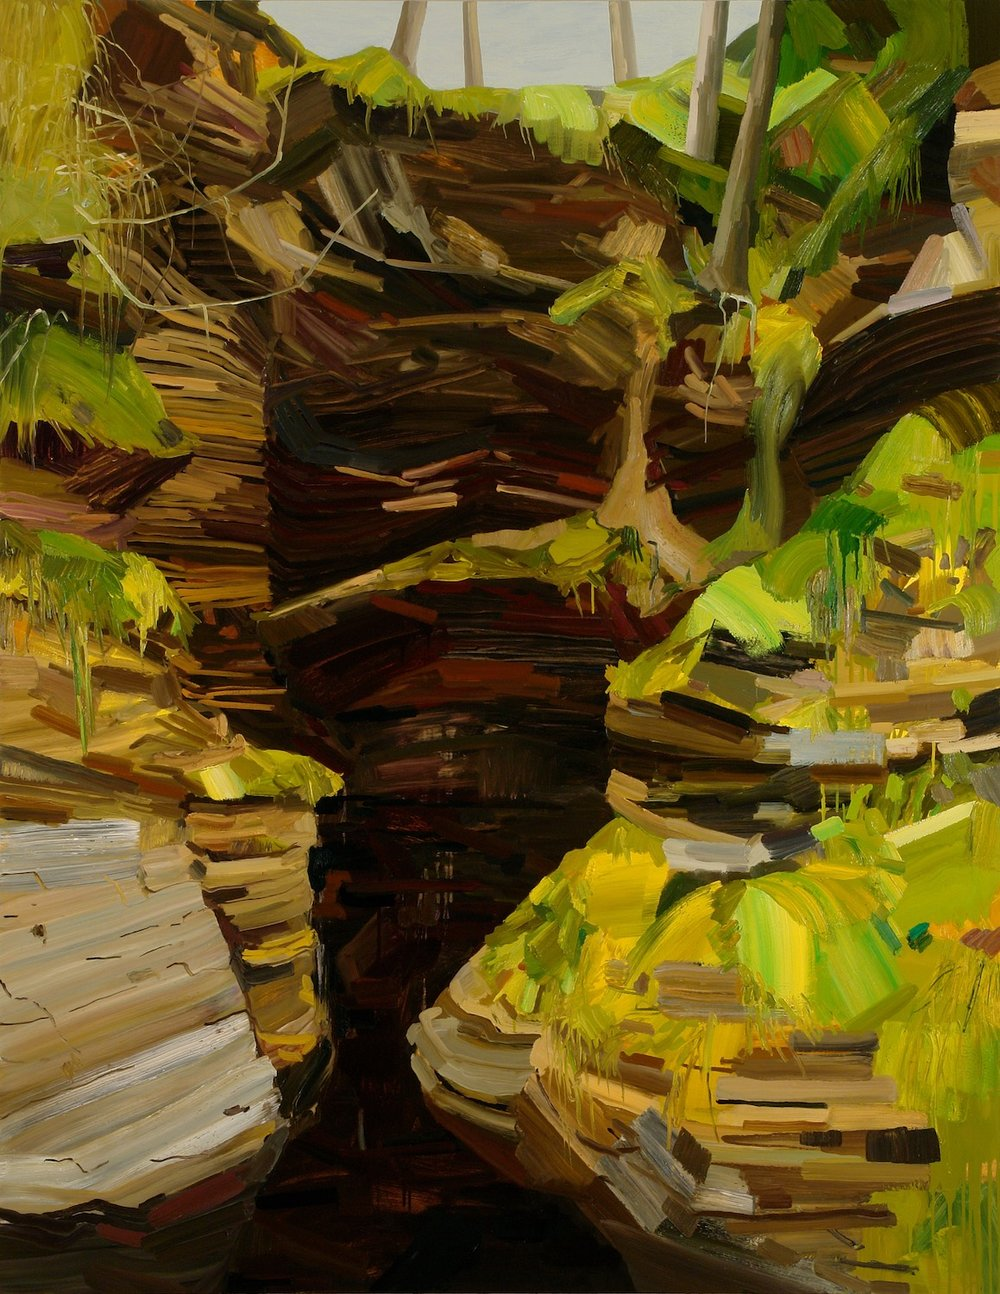 Crevice , 2008, Oil on canvas, 108 x 84""